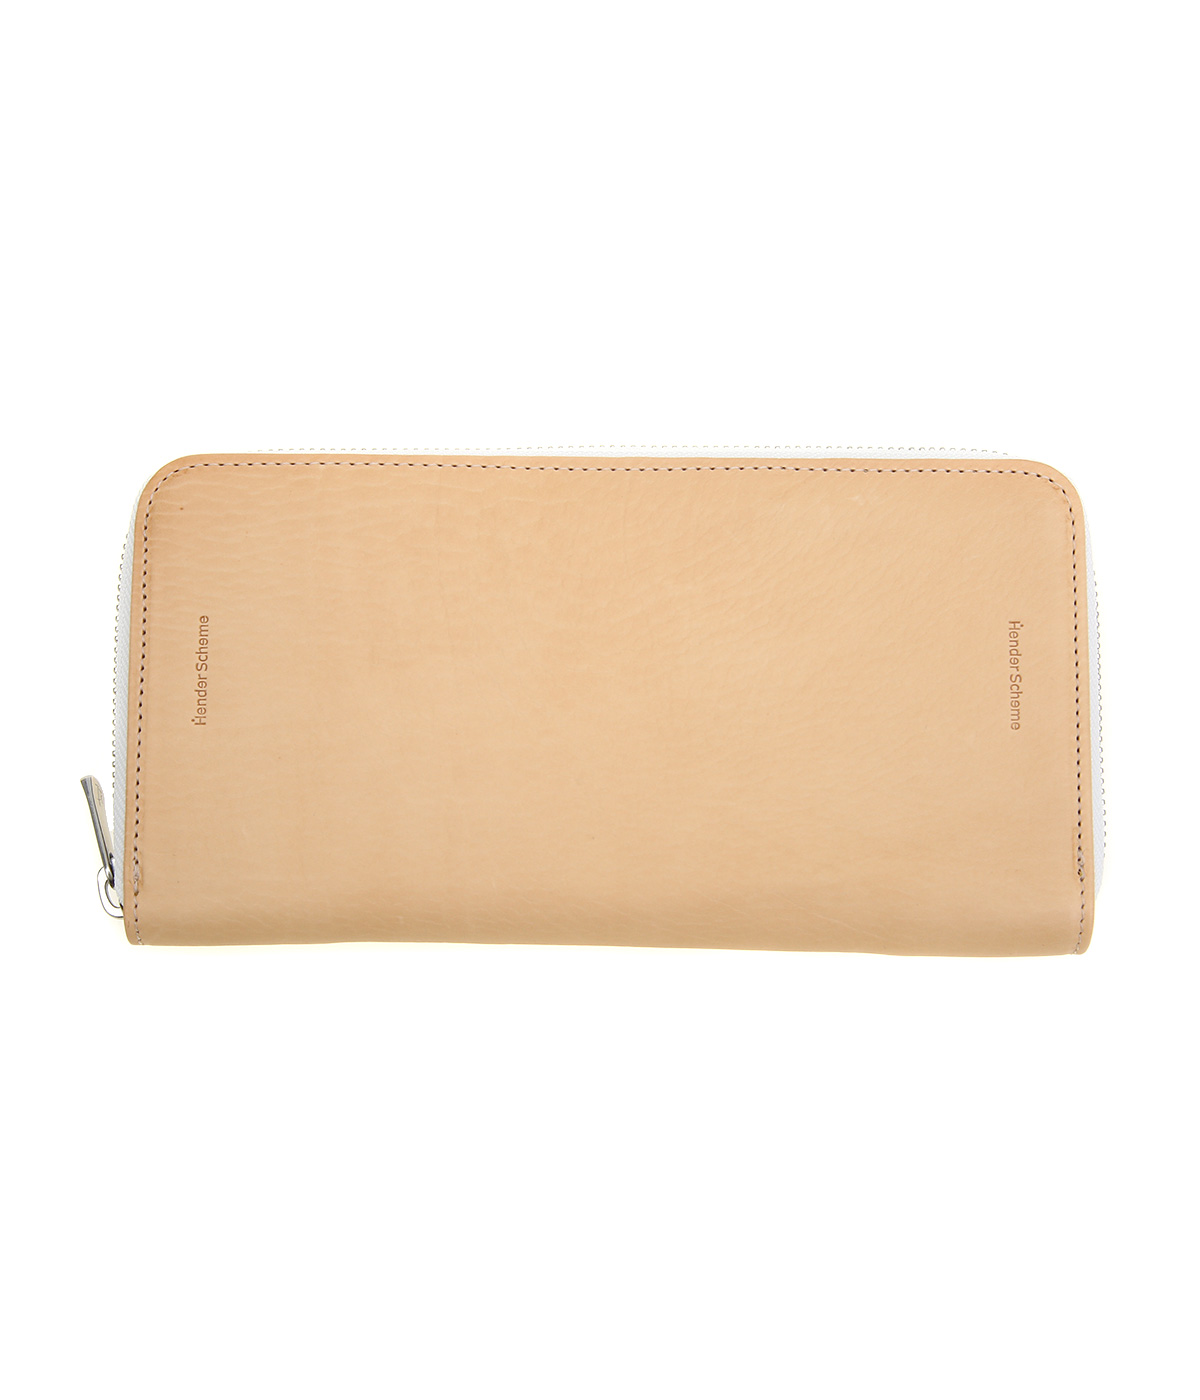 long zip purse -natural-